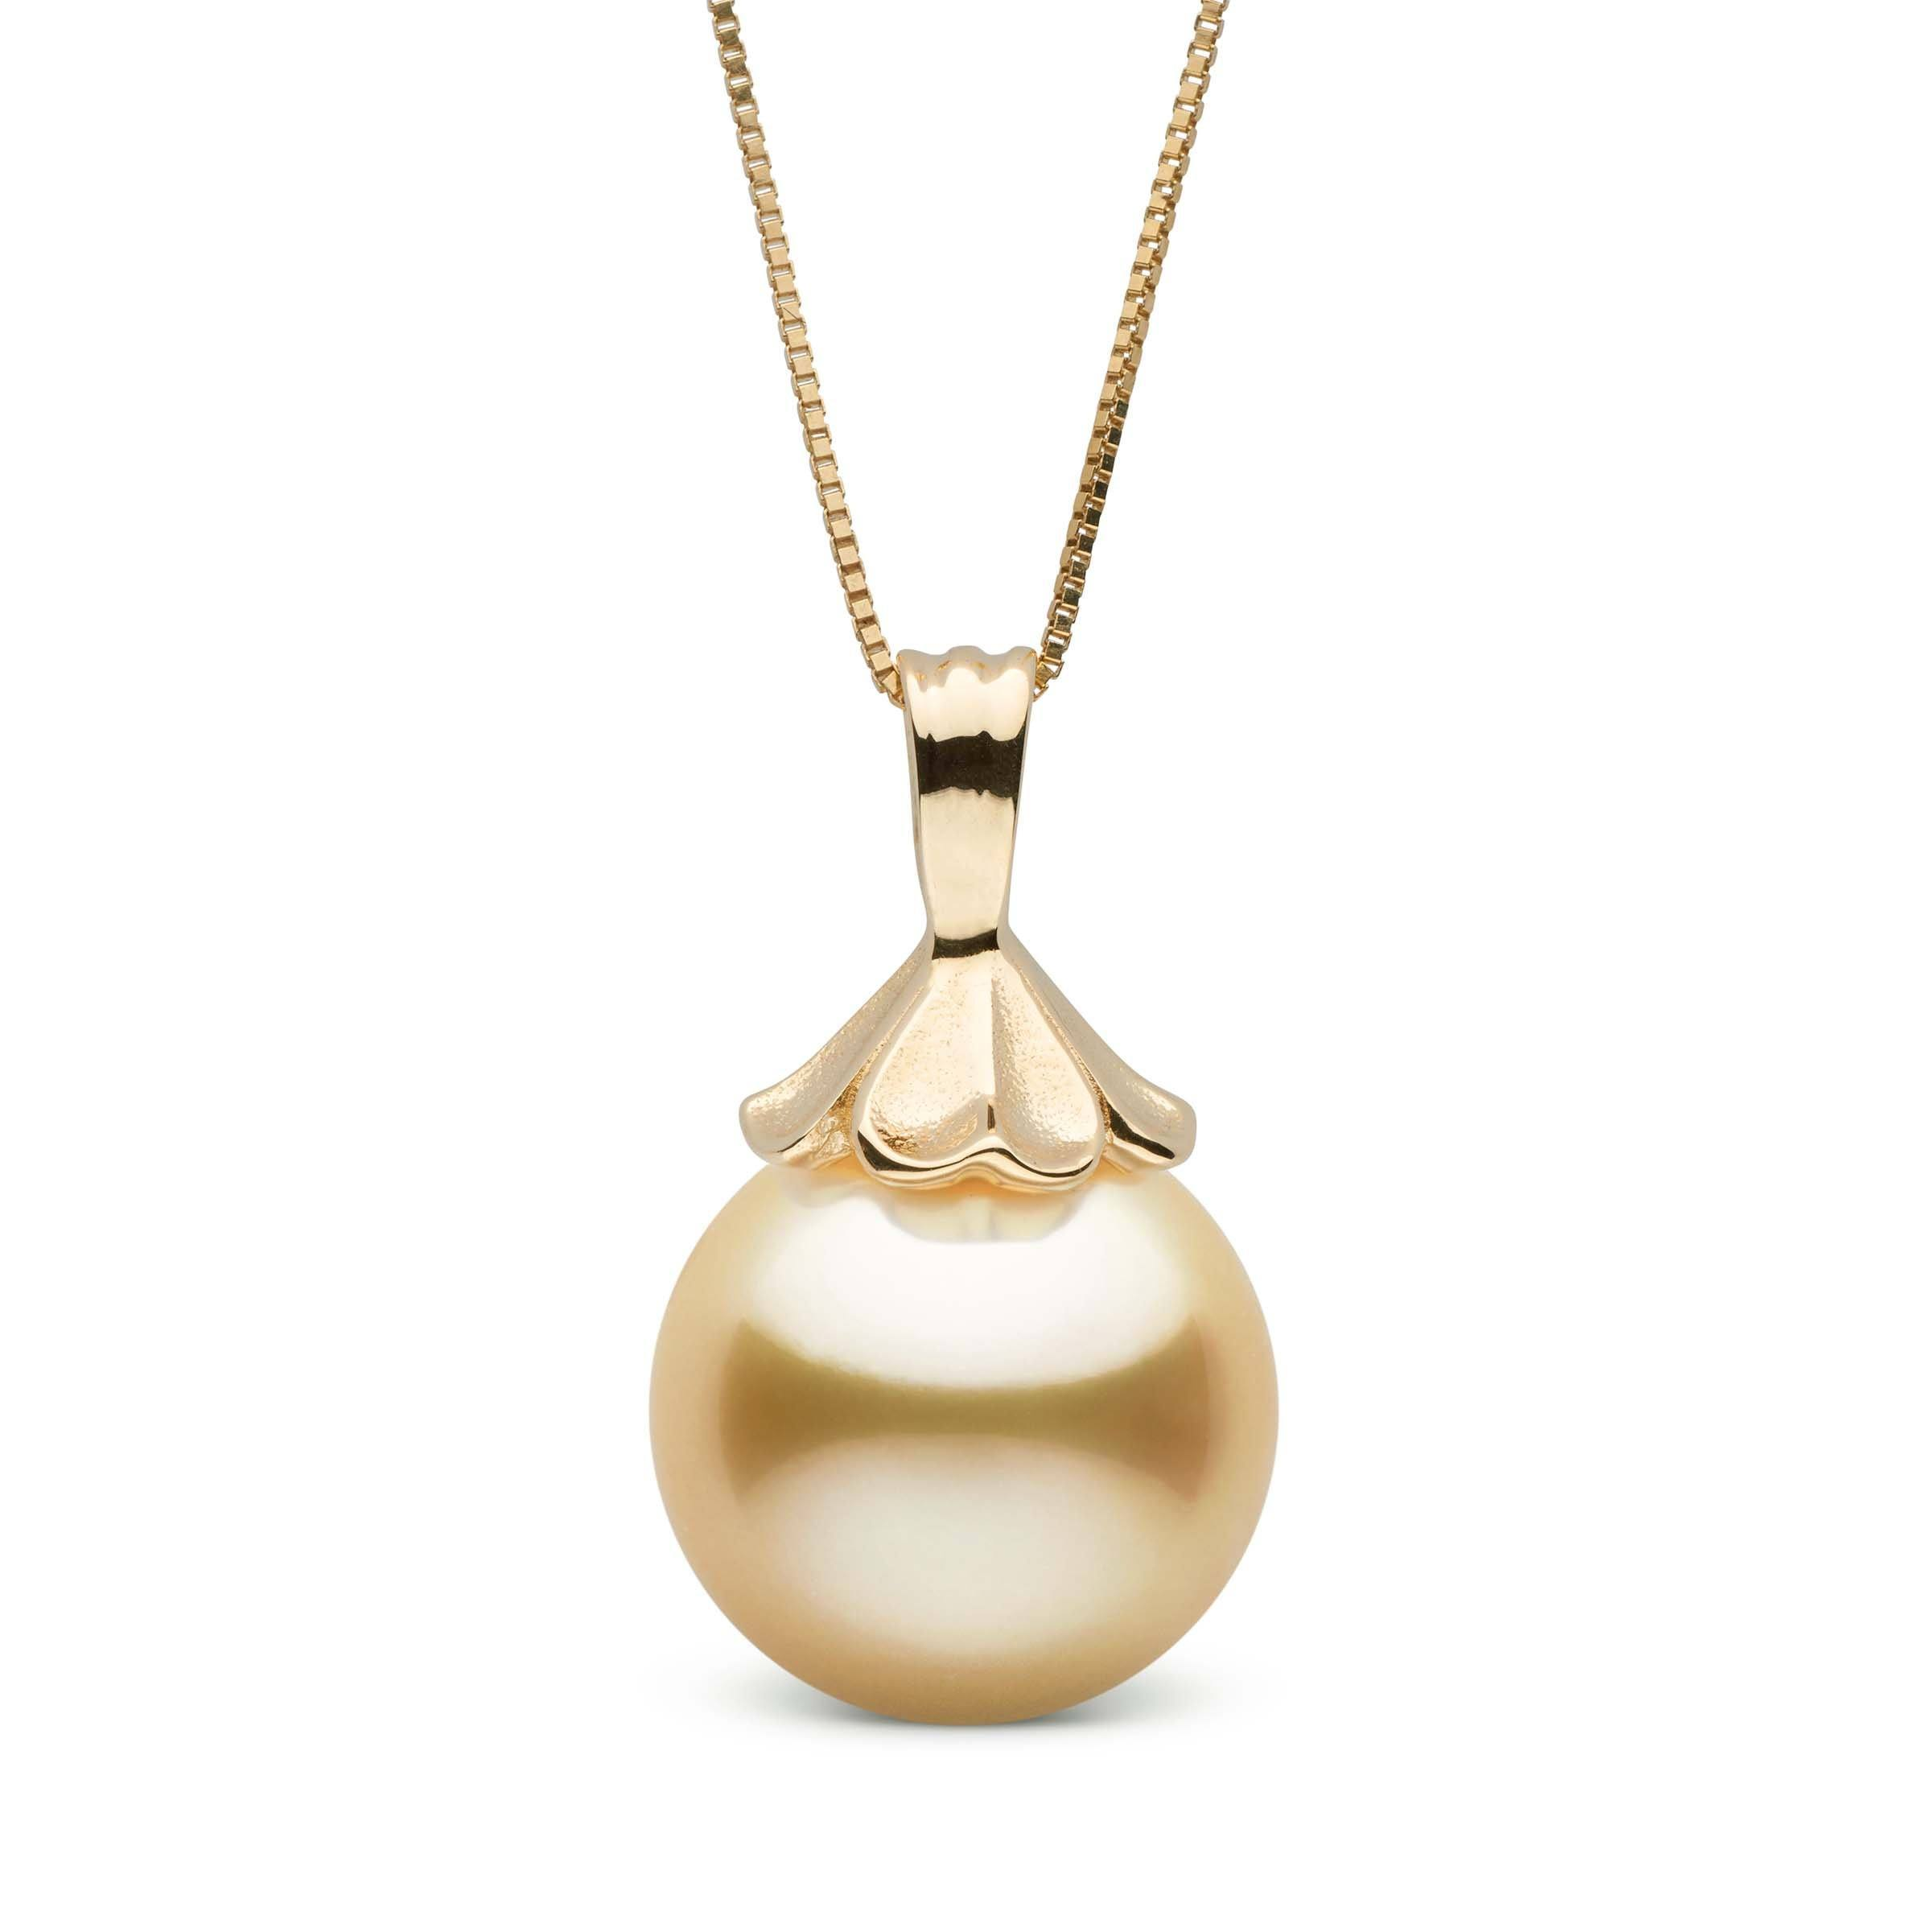 Petal Collection Golden 12.0-13.0 mm South Sea Pearl Pendant